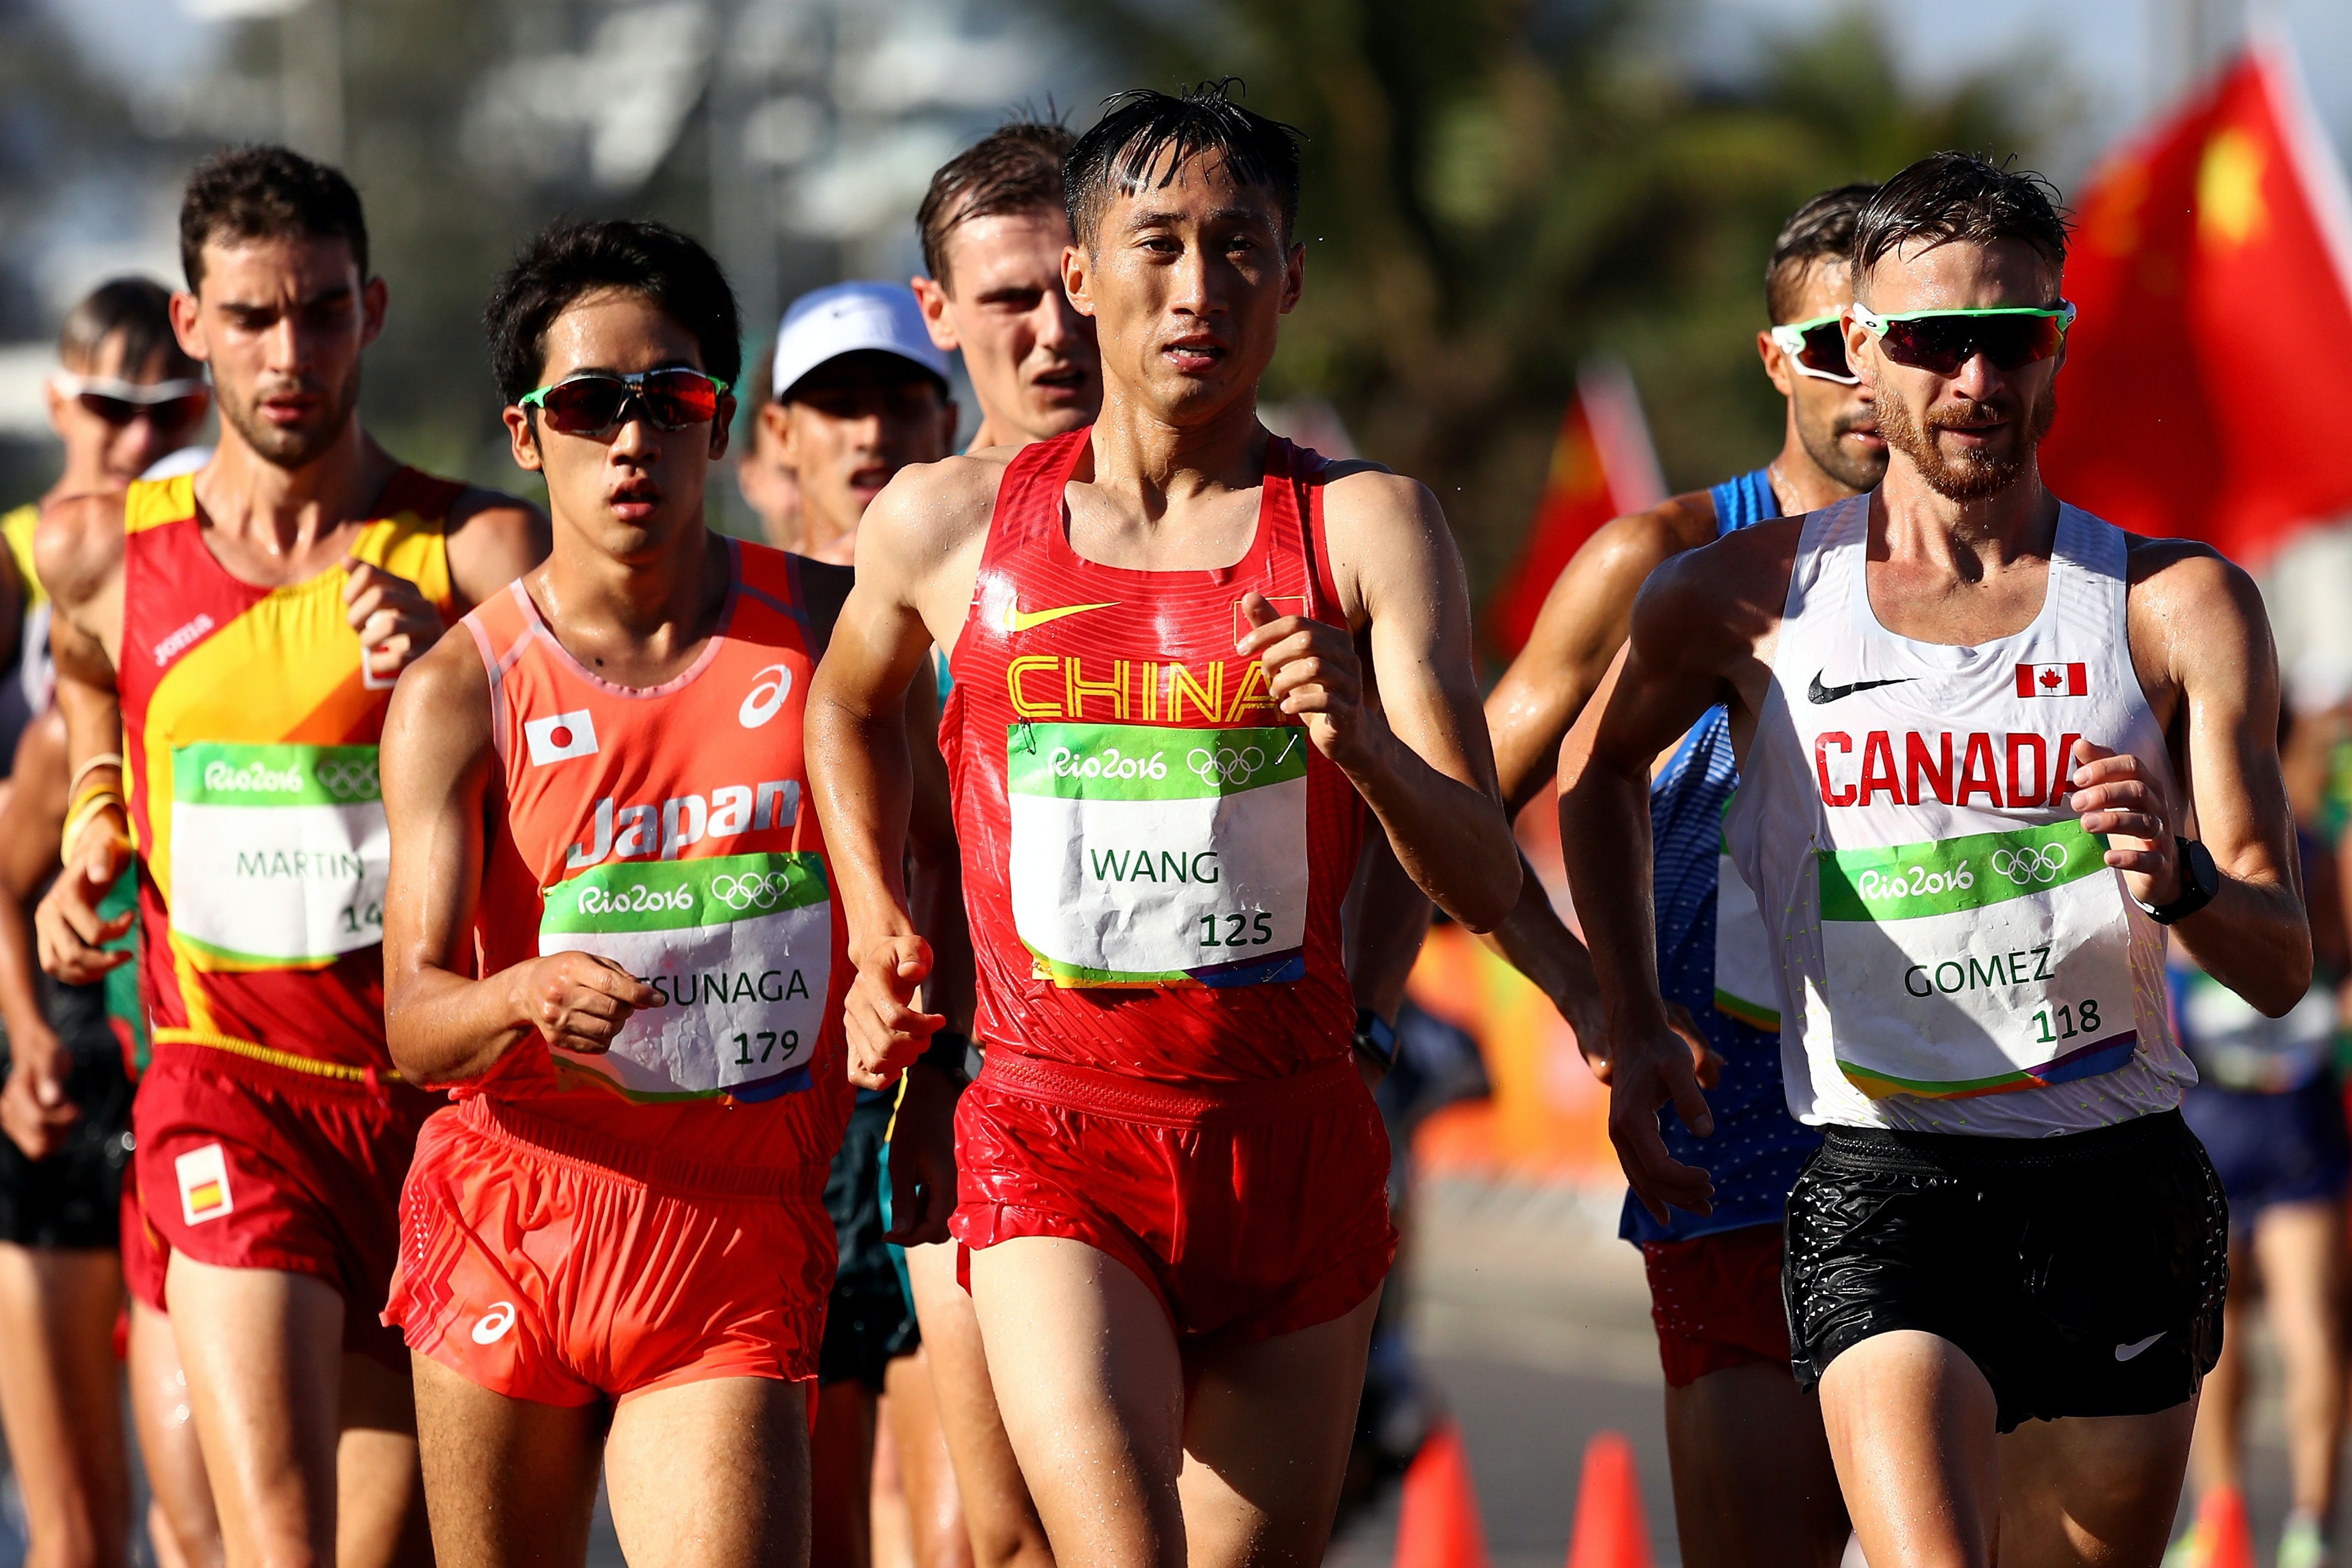 China's Zhen Wang took home a gold medal in the 20 km race walk last Friday, finishing with a time of 1:19:14.